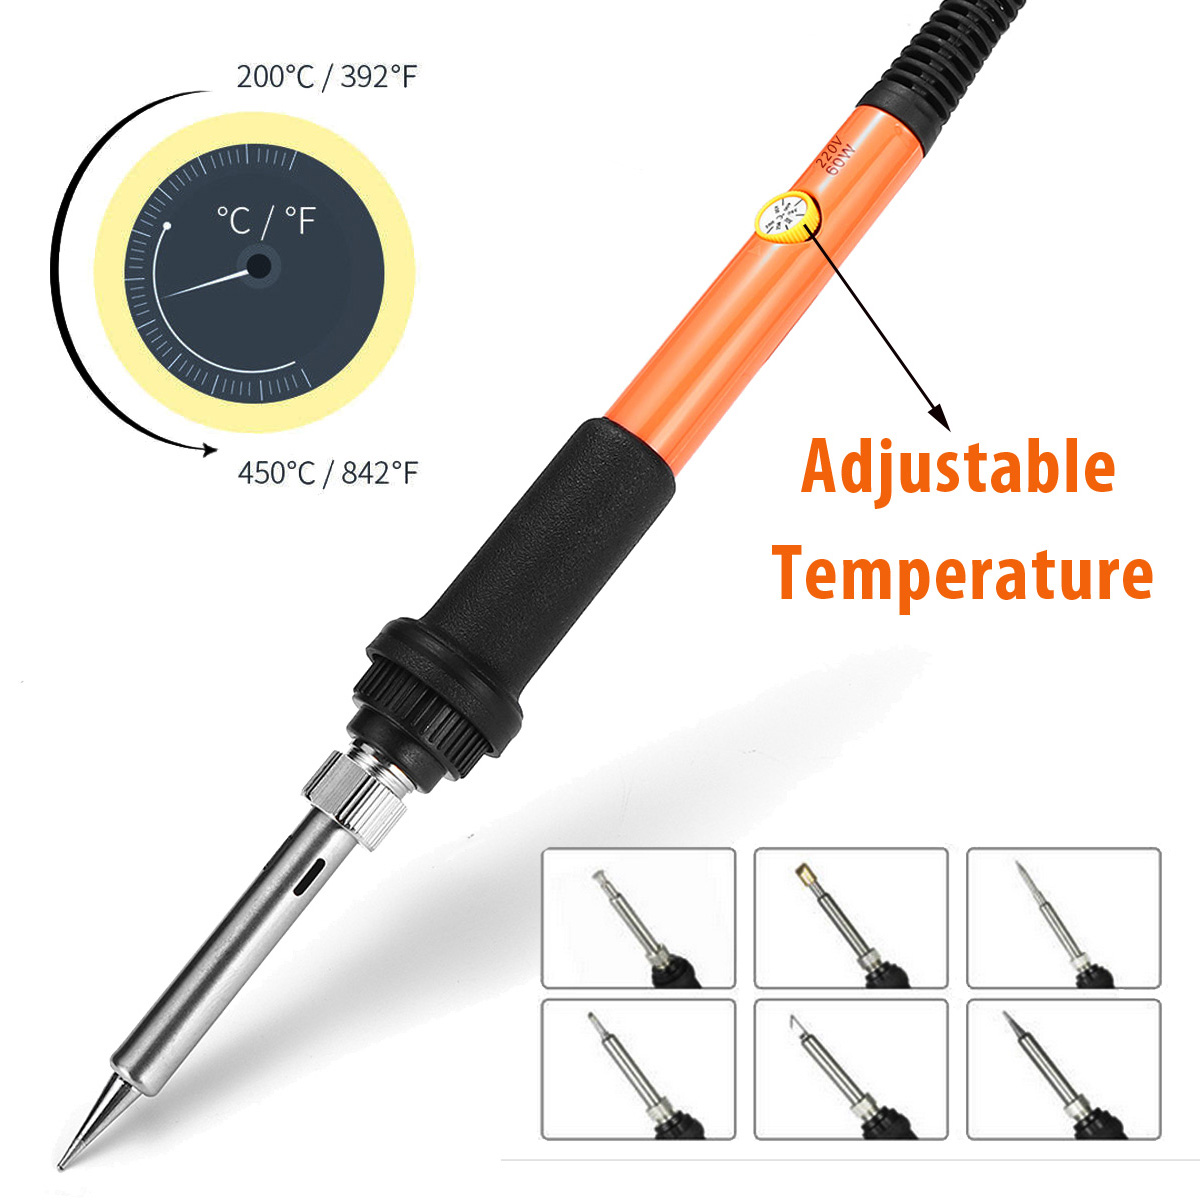 30Pcs 220V 60W Electric Soldering Iron Temperature Adjust Tool Copper Wood Burning Pen Pyrography Engrave Solder Tips Set Craft